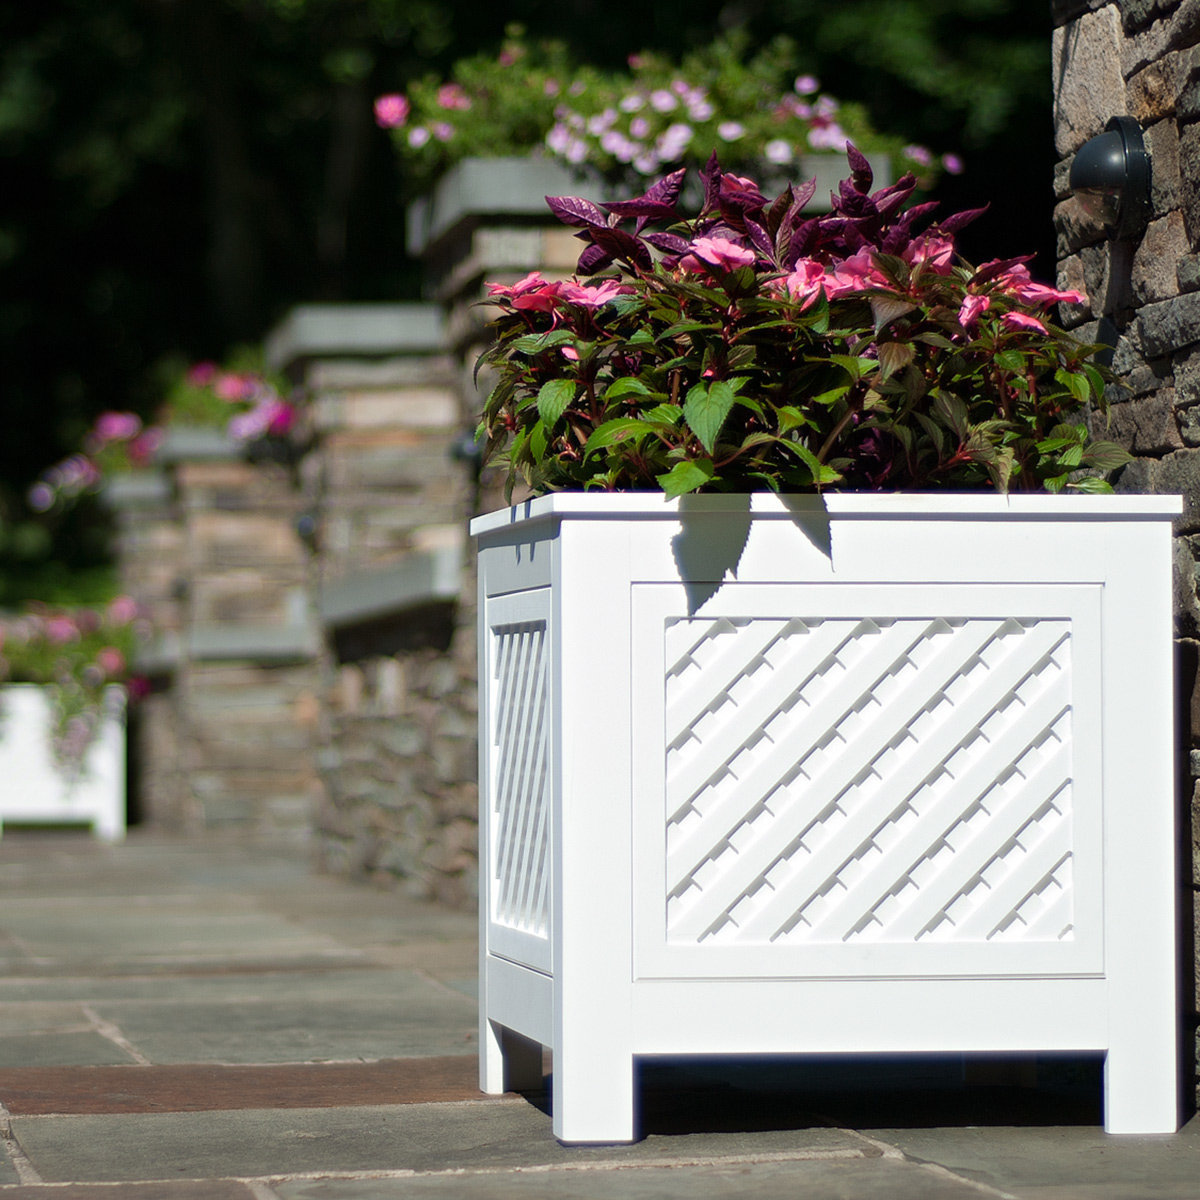 Outdoor Planter Speakers Amazing outdoor planter speakers amazing outdoor planter speakers planterspeakers azek north salem outdoor planter speakers with 180 view larger image workwithnaturefo